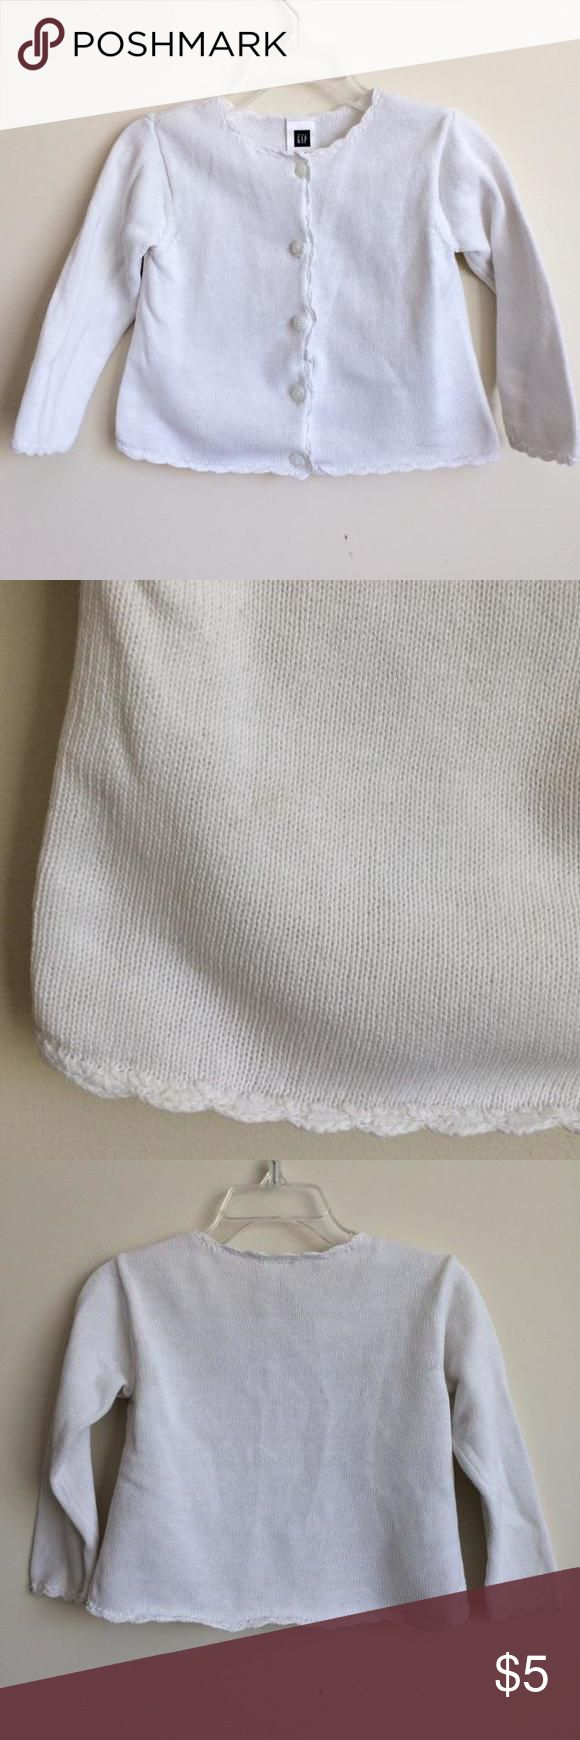 Girls Baby Gap Outlet Cardigan 12-18 Months This white sweater buttons down the front. There is a faint stain on the front. Please see the pictures. Baby Gap Shirts & Tops Sweaters